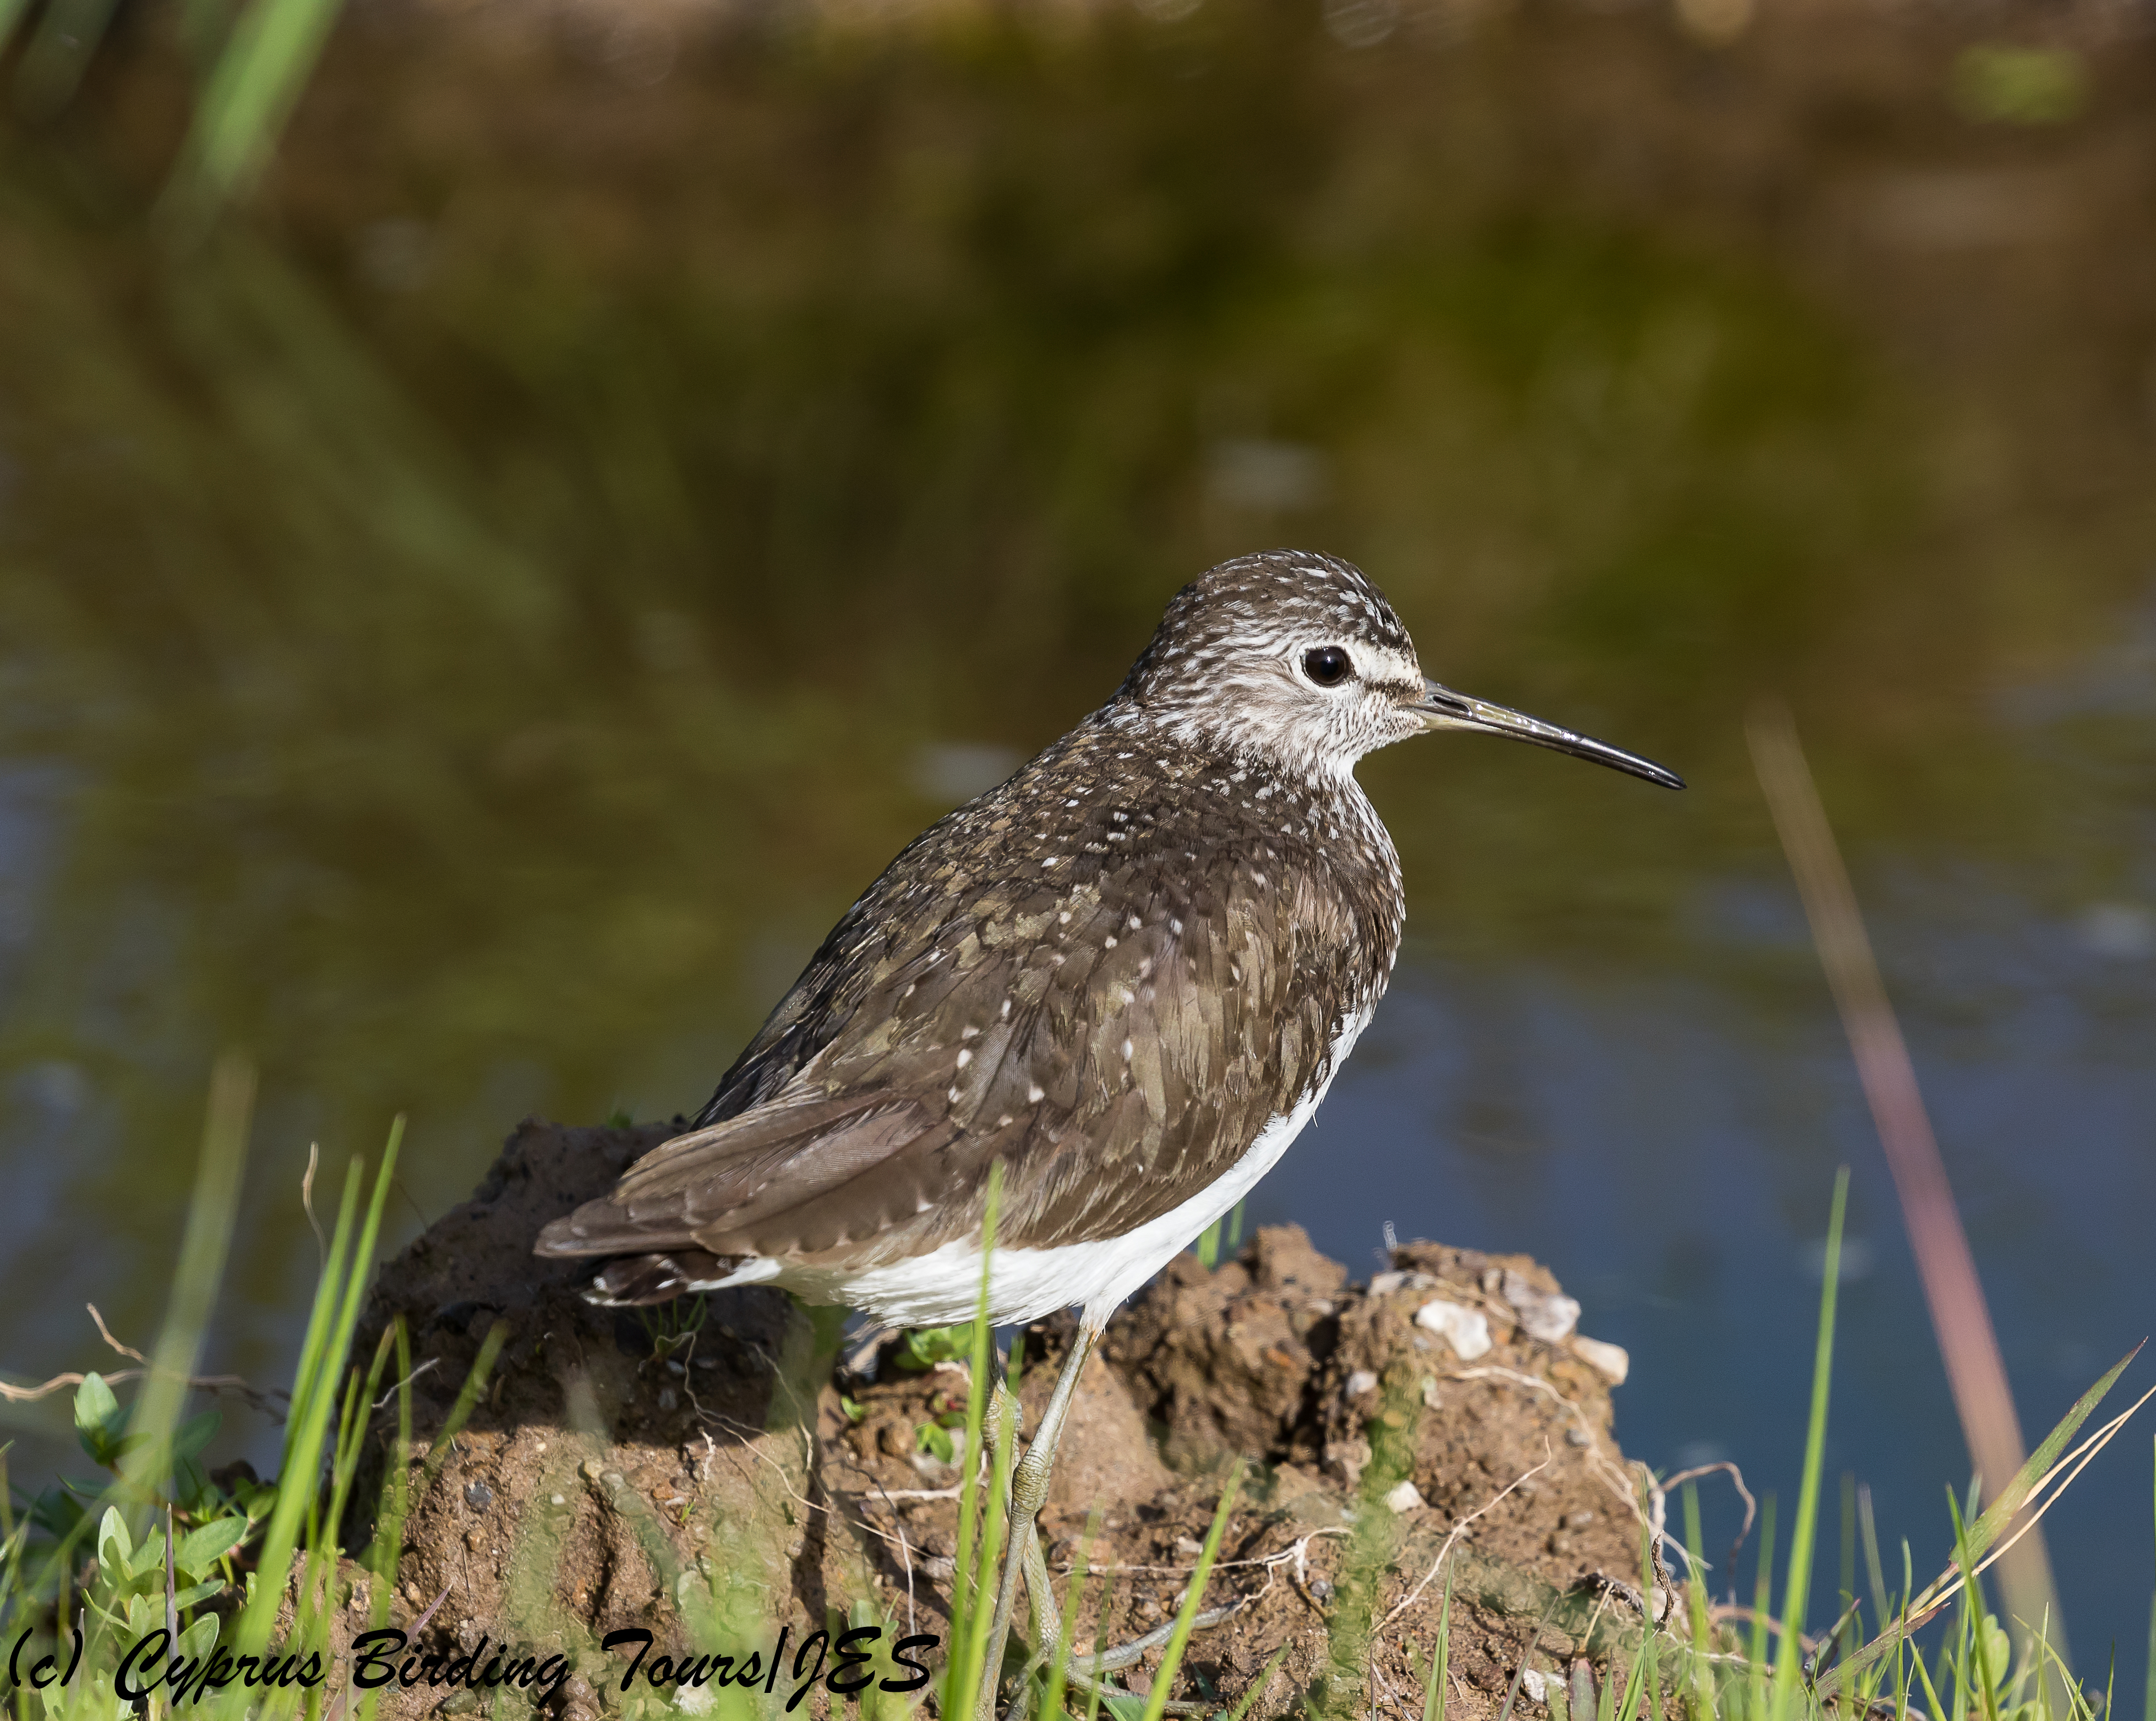 Green Sandpiper,  Anarita Park 21st March 2018 (c) Cyprus Birding Tours